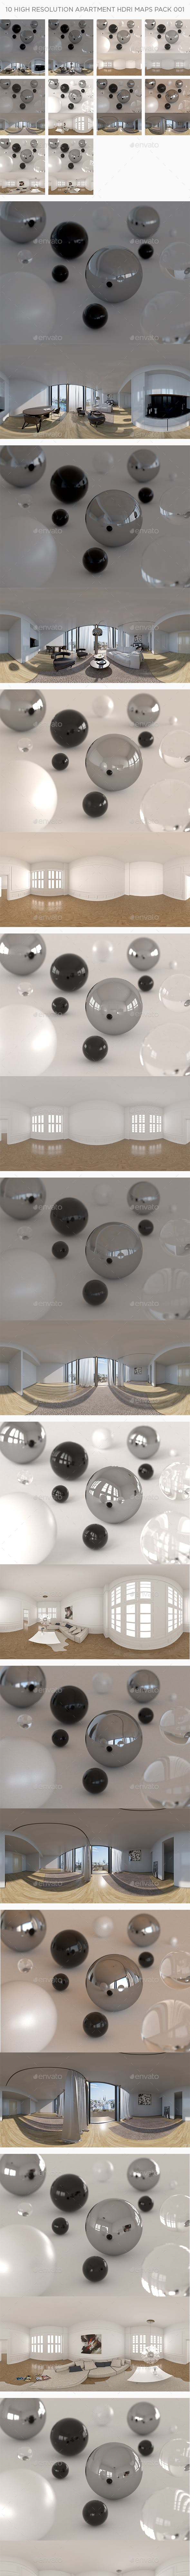 10 High Resolution Apartment HDRi Maps Pack 001 - 3DOcean Item for Sale